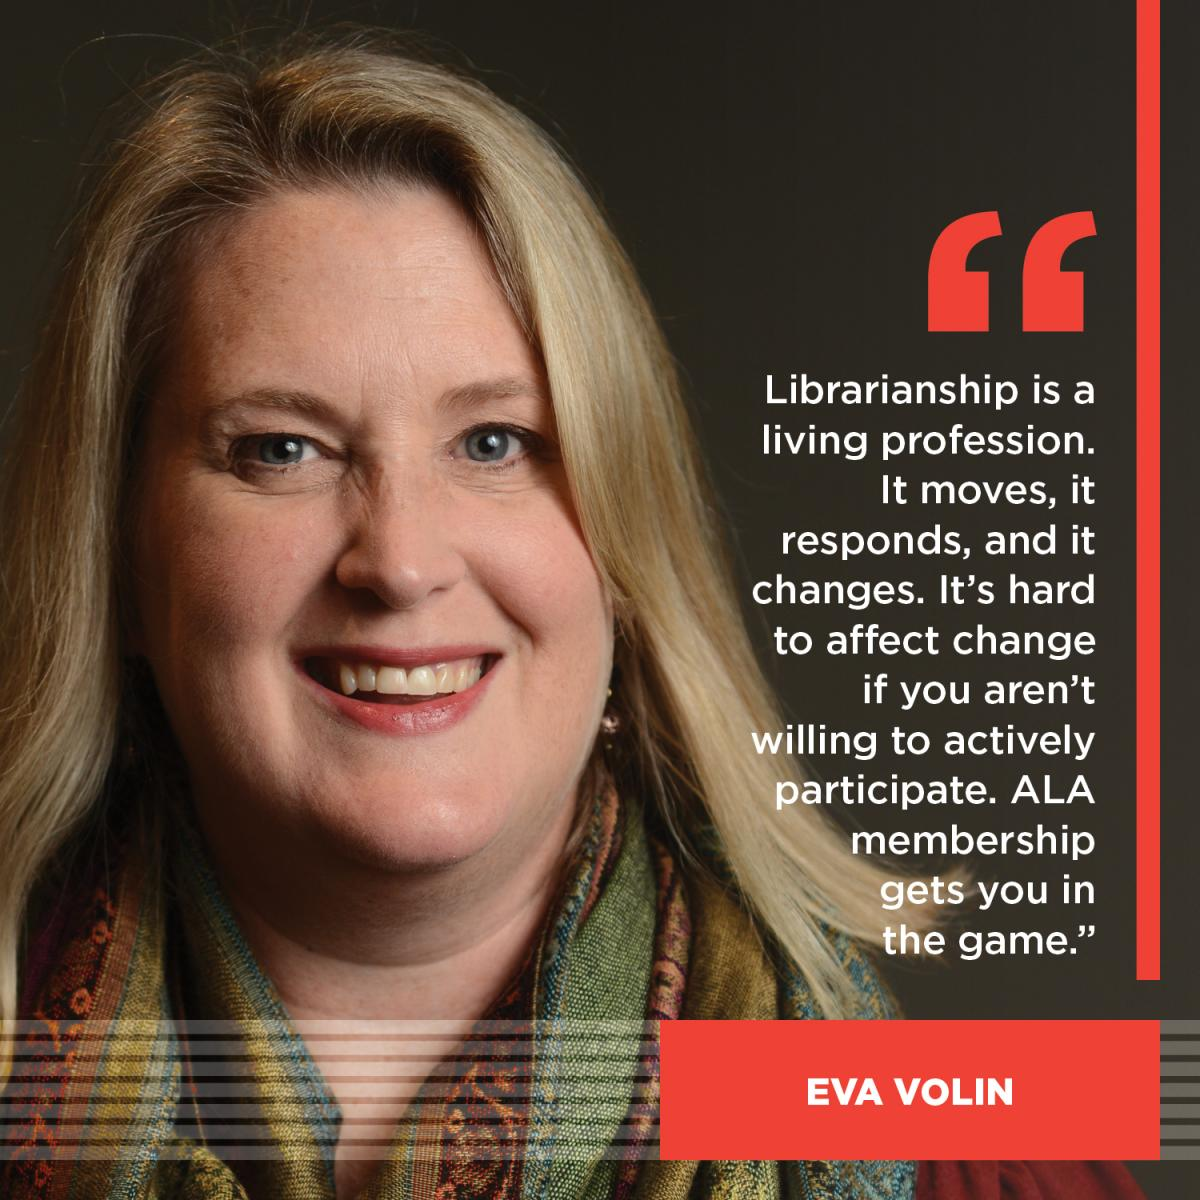 Librarianship is a living profession. It moves, it responds and it changes. It's hard to affect change if you aren't willing to actively participate. ALA gets you in the game. - Eva Volin